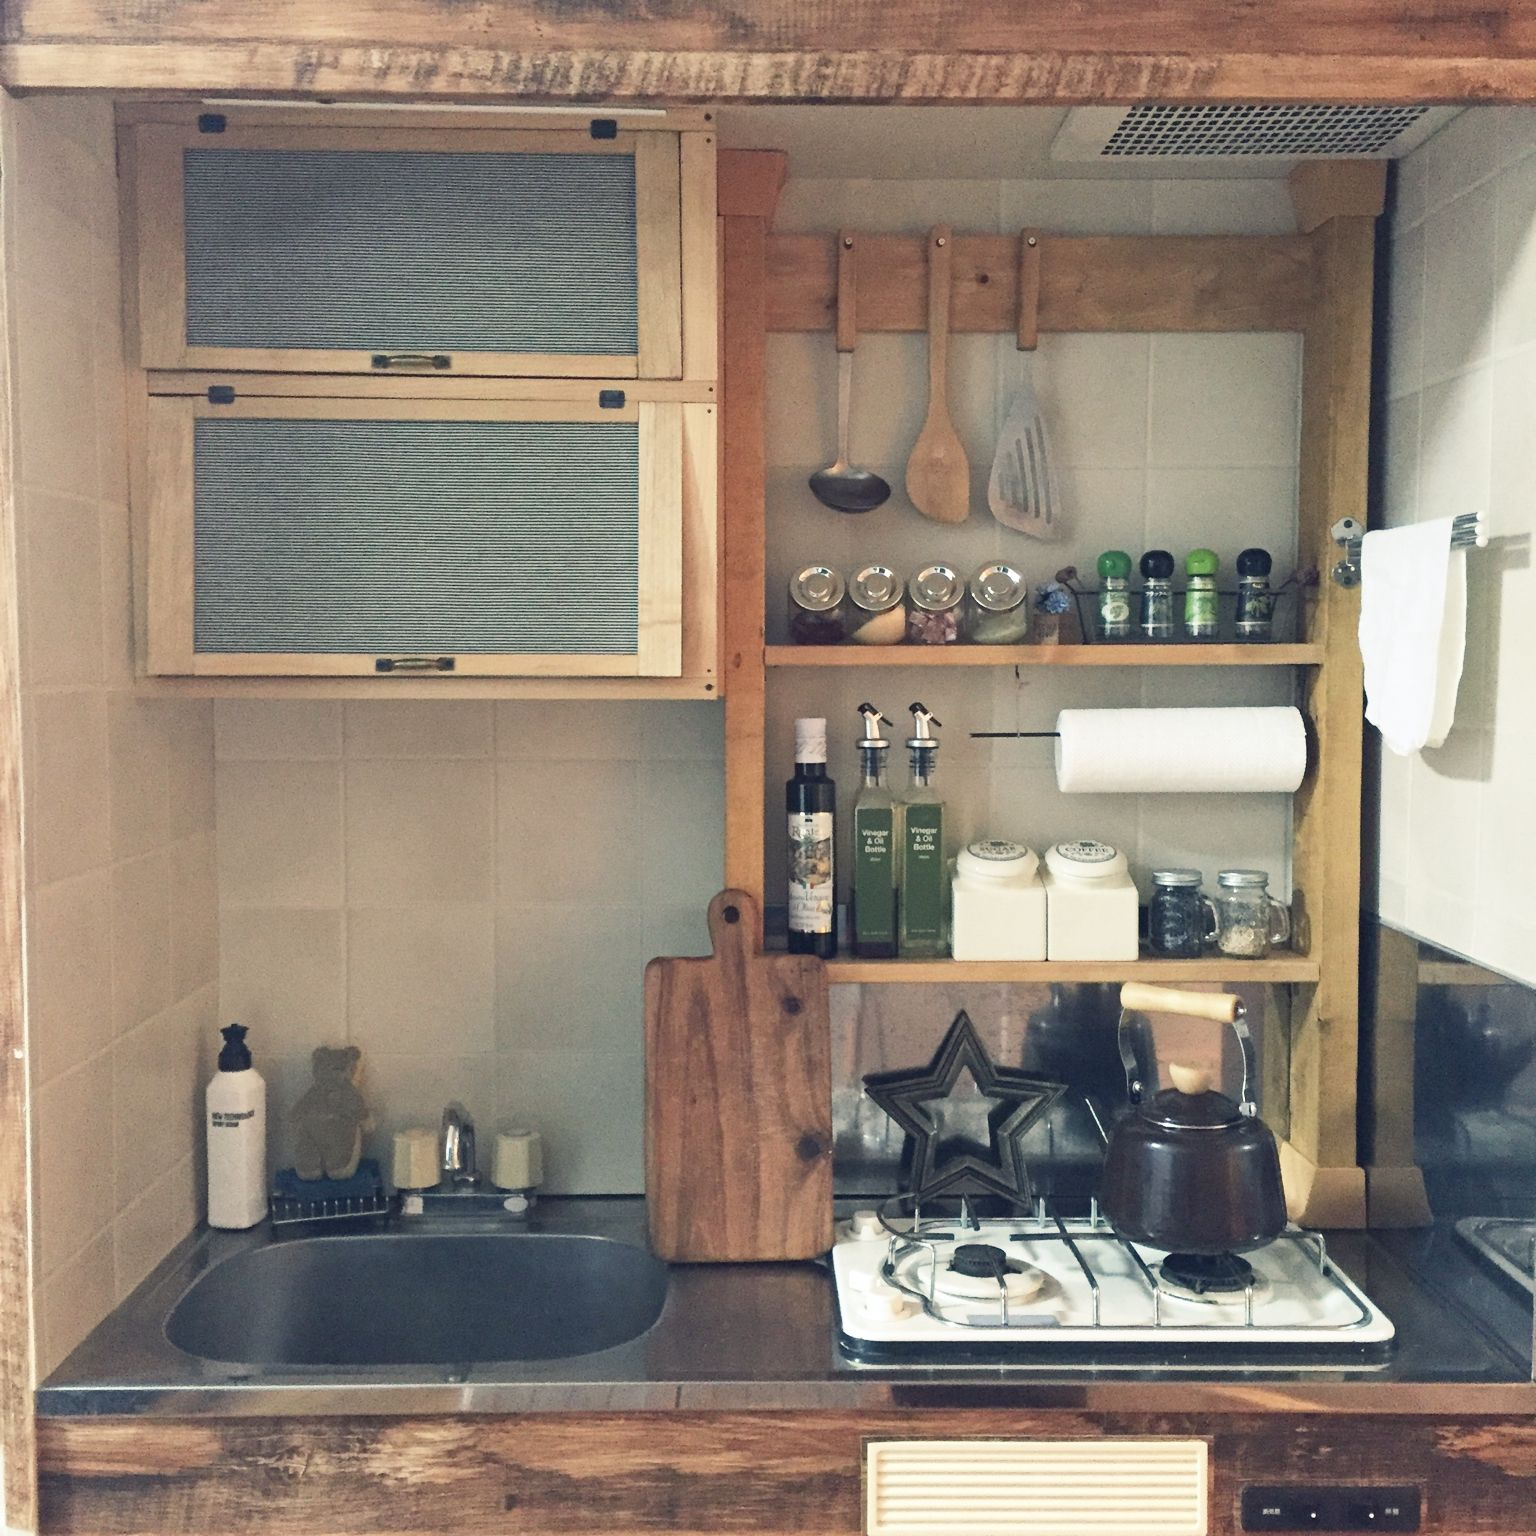 Mini Japanese Kitchen.  Home kitchens, Kitchen interior, Tiny kitchen